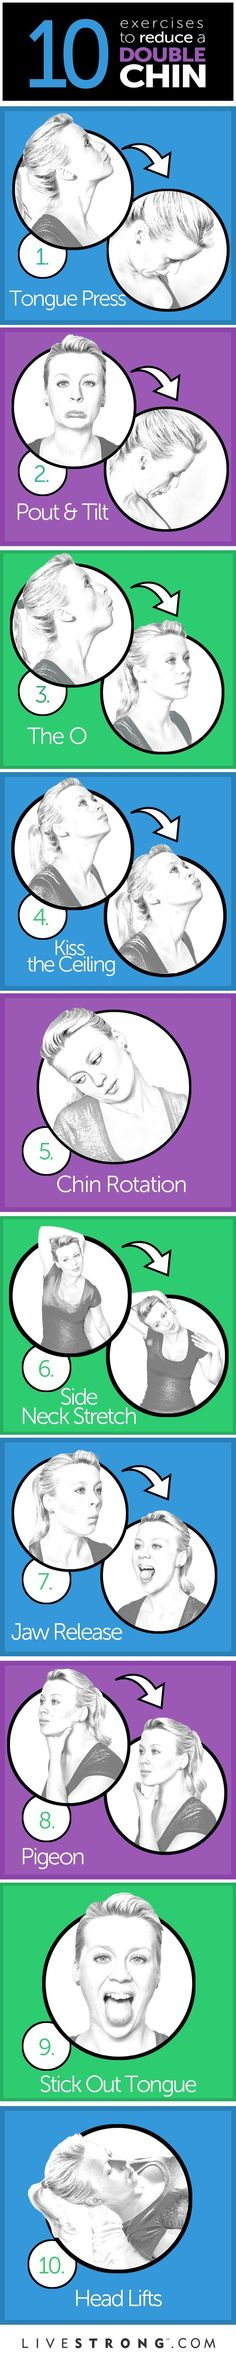 10 great exercises to tone your neck and chin. http://www.4myprosperity.com/?page_id=19